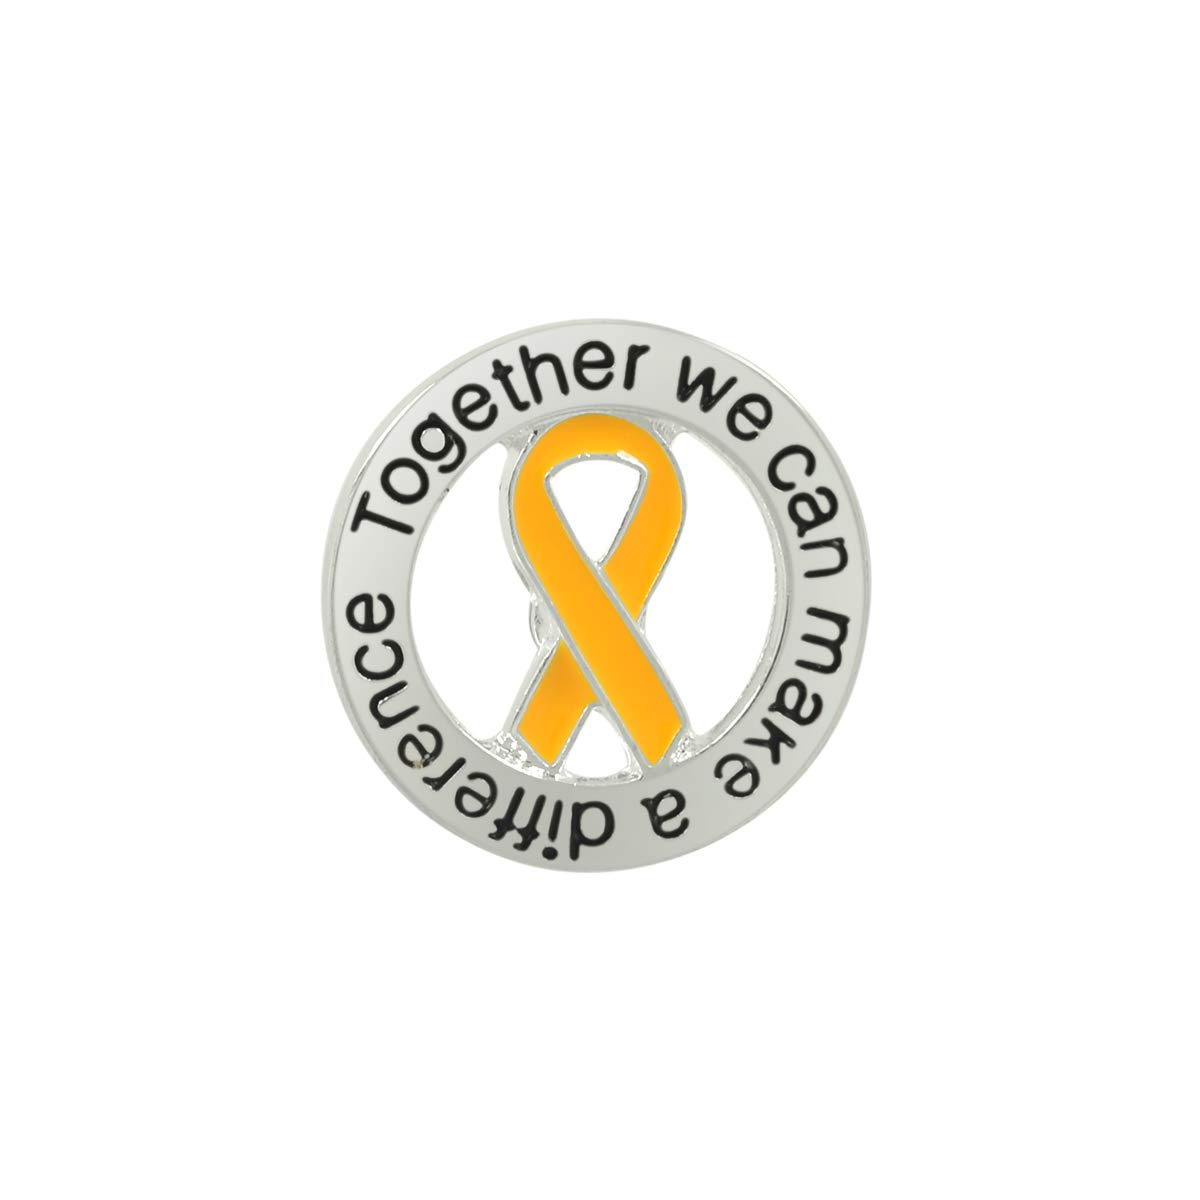 25 Pack Gold Ribbon Round Awareness Pins (25 Pins in a Bag) by Fundraising For A Cause